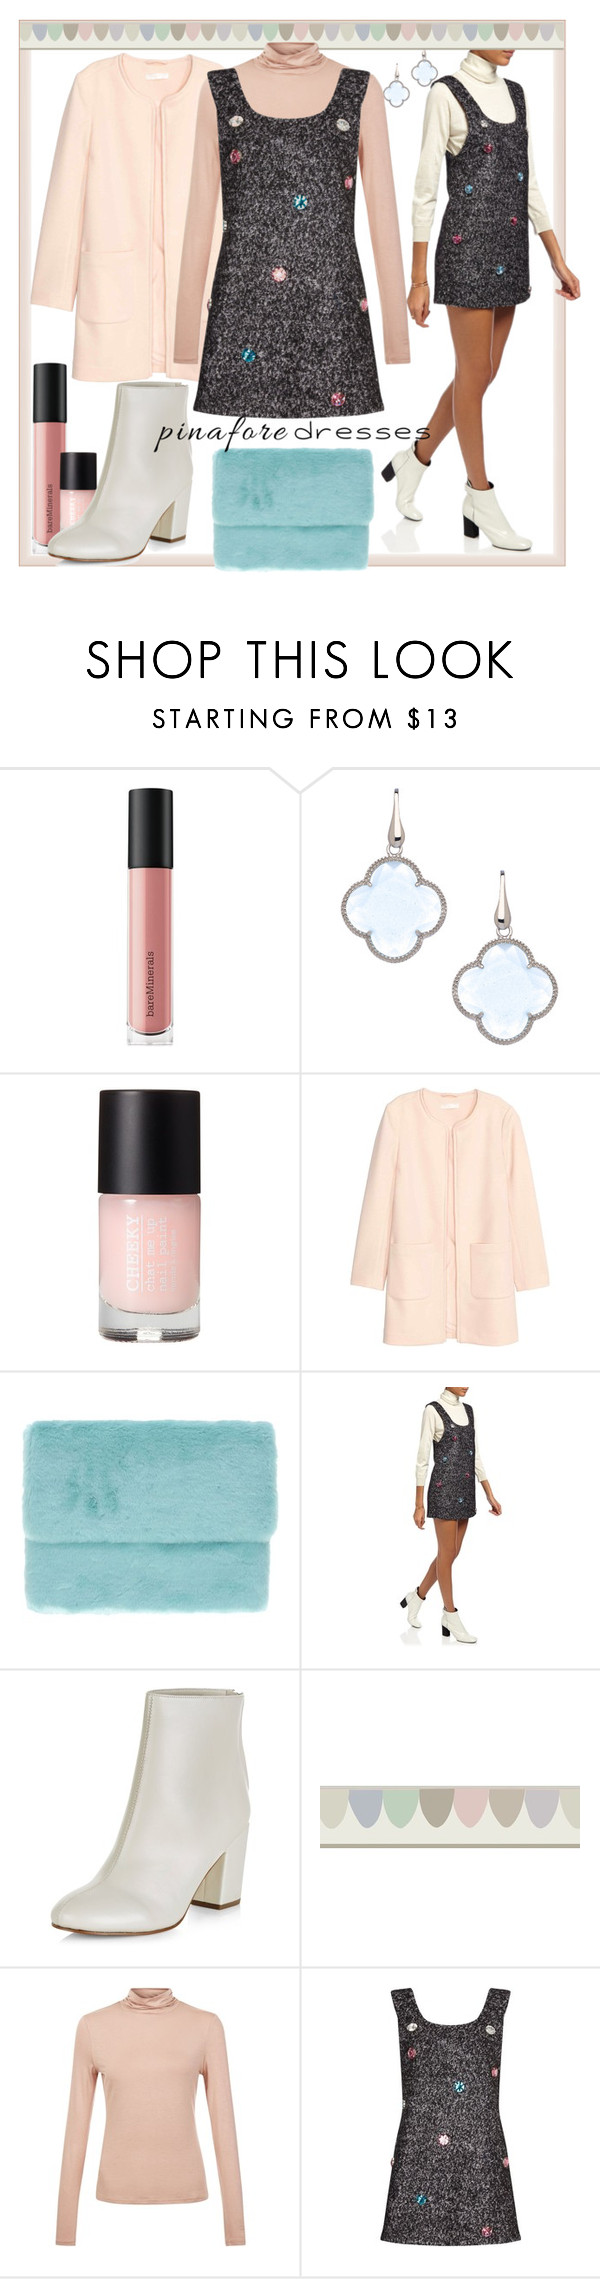 """""""Boucle"""" by alejandra-soraires on Polyvore featuring moda, Bare Escentuals, Elliott Chandler, Oui, Odile!, Anna K, New Look, pinafores y 60secondstyle"""